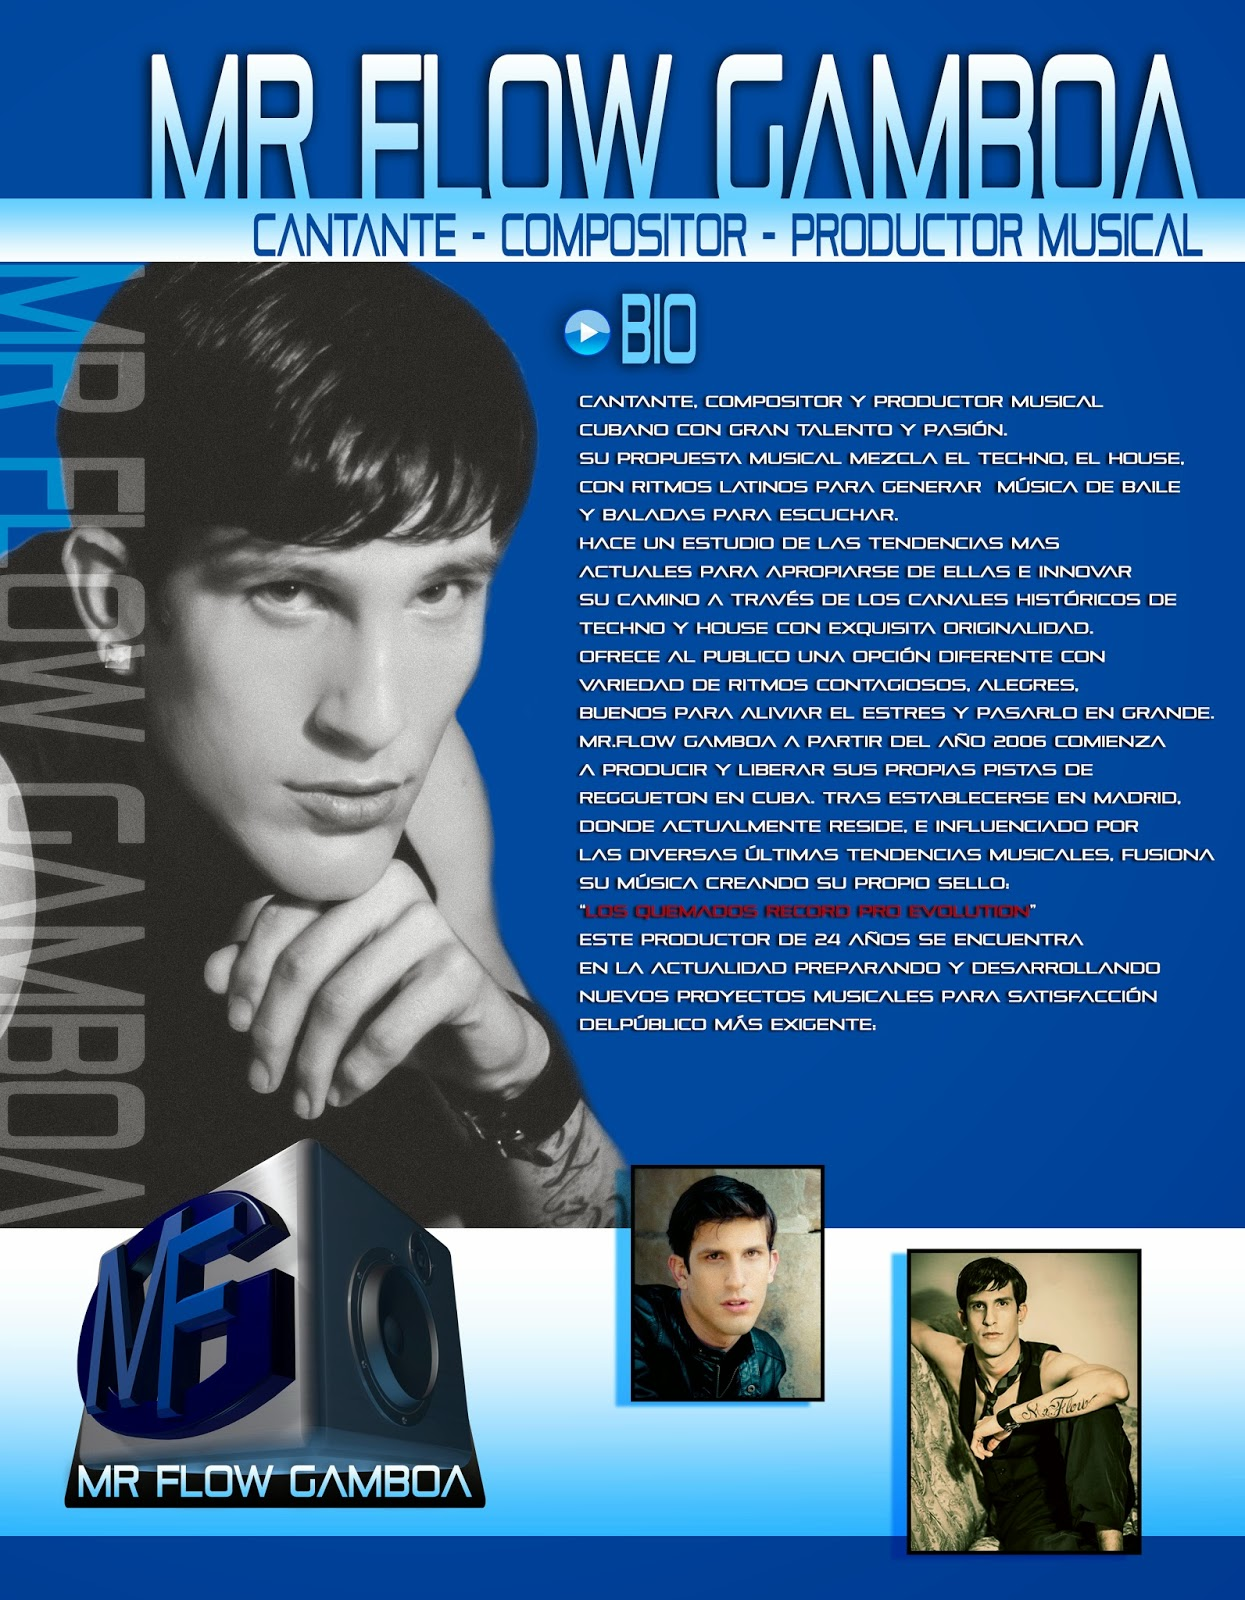 http://issuu.com/javieralfonso/docs/press_kit/1